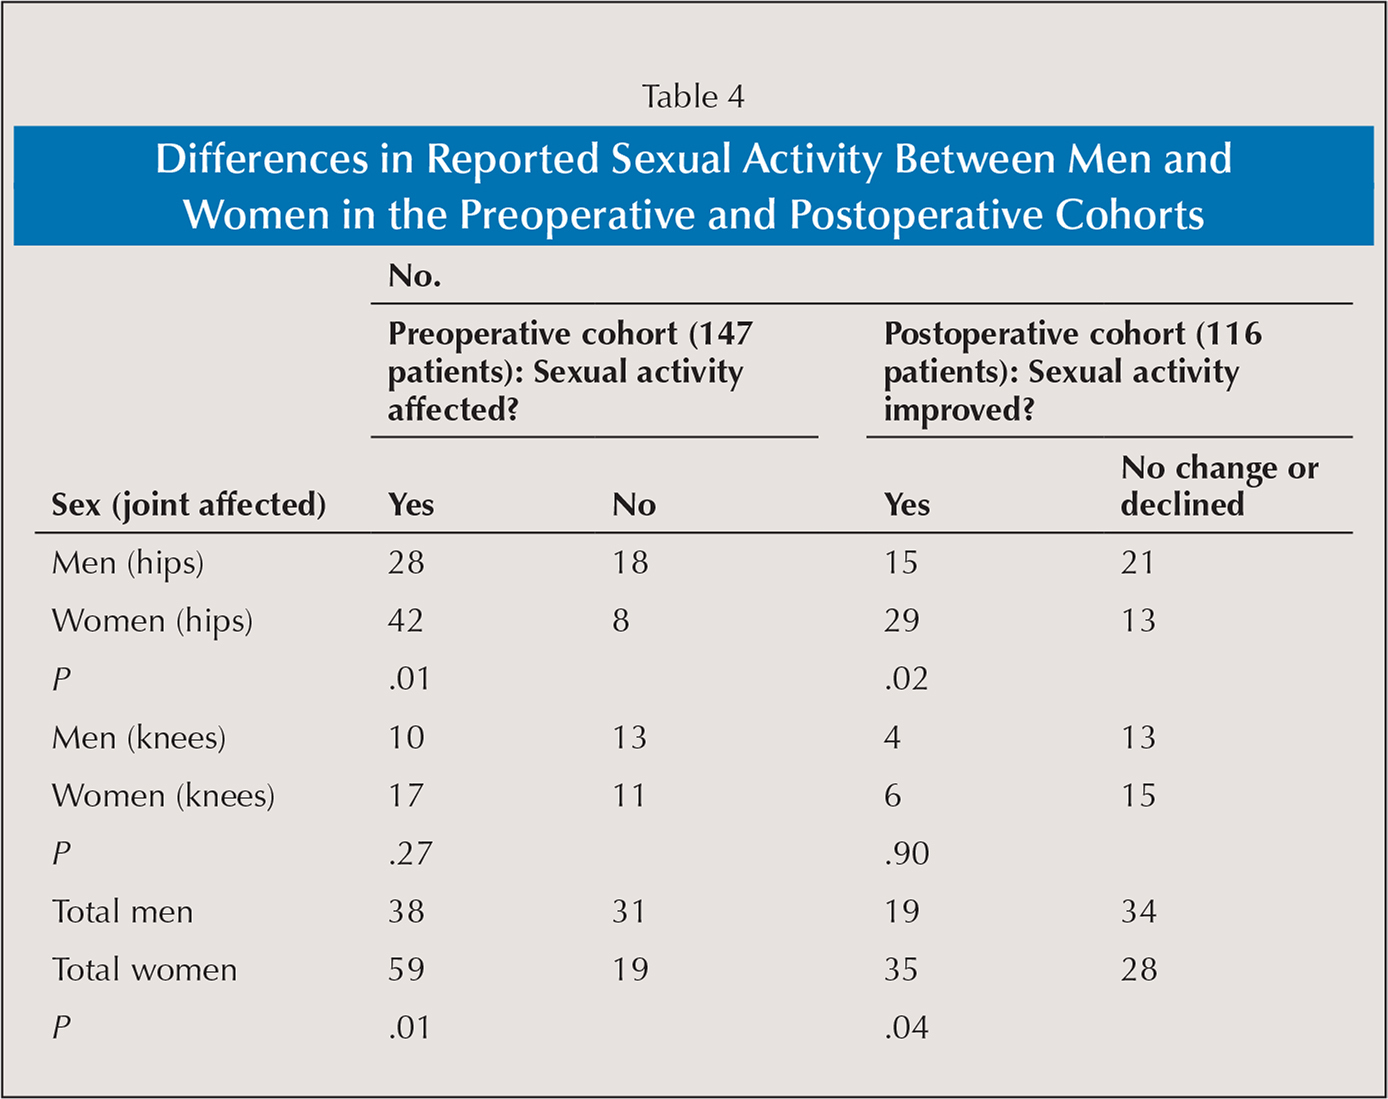 Differences in Reported Sexual Activity Between Men and Women in the Preoperative and Postoperative Cohorts